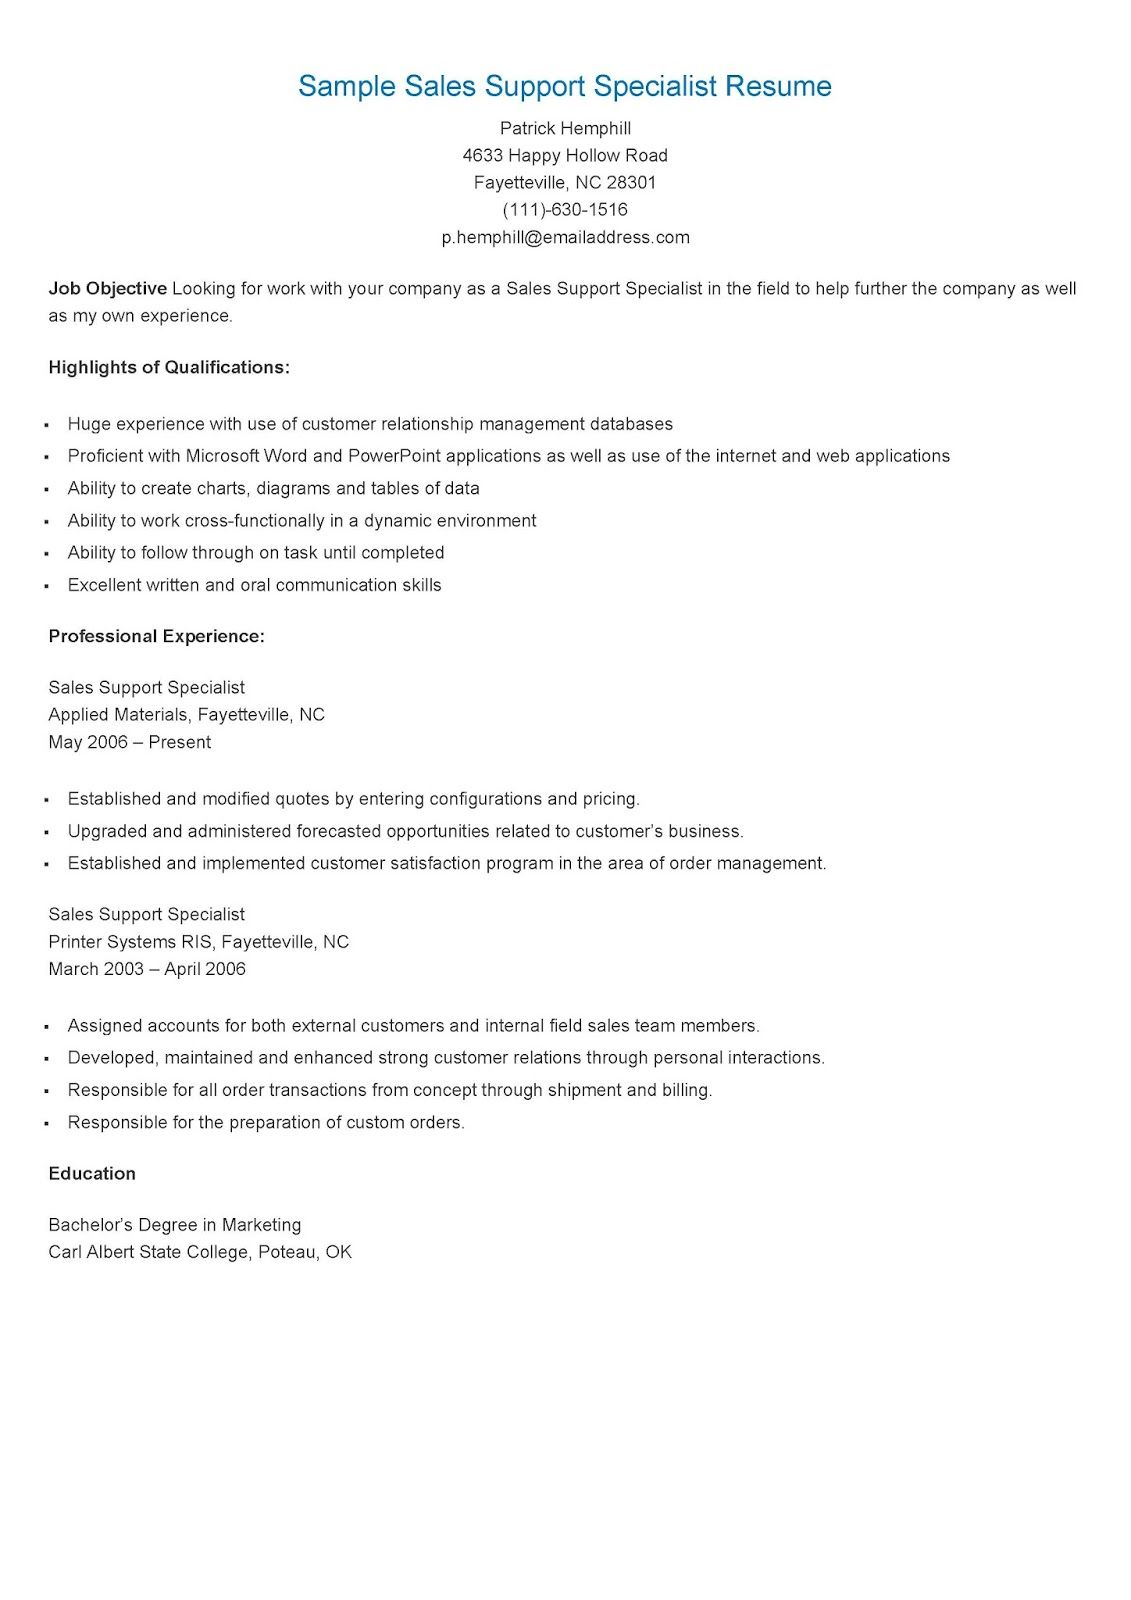 Sample Sales Support Specialist Resume resame Pinterest